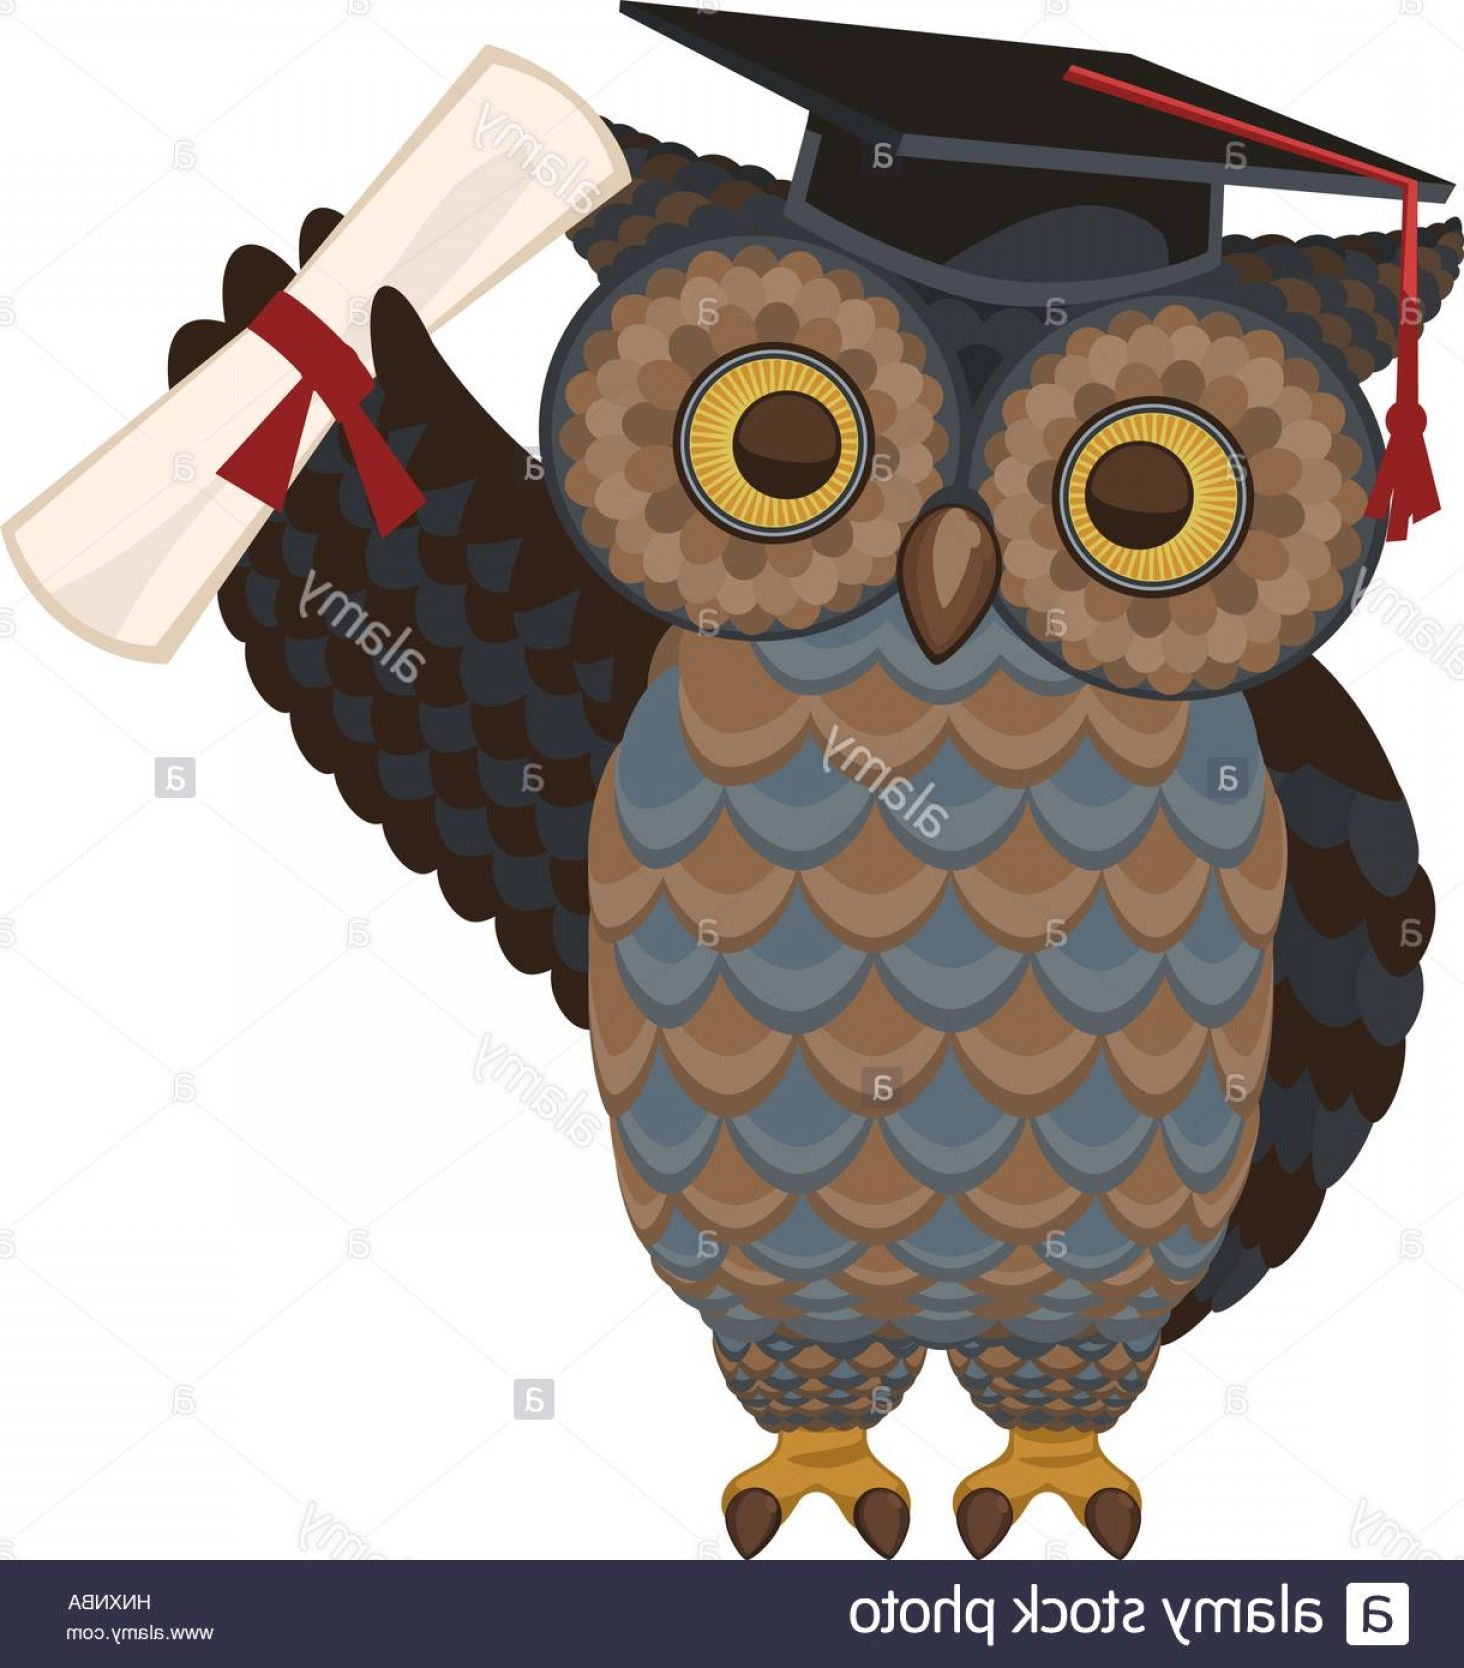 Standing Diploma Vector: Stock Photo Wise Owl Standing With Diploma And Hat Vector Illustration